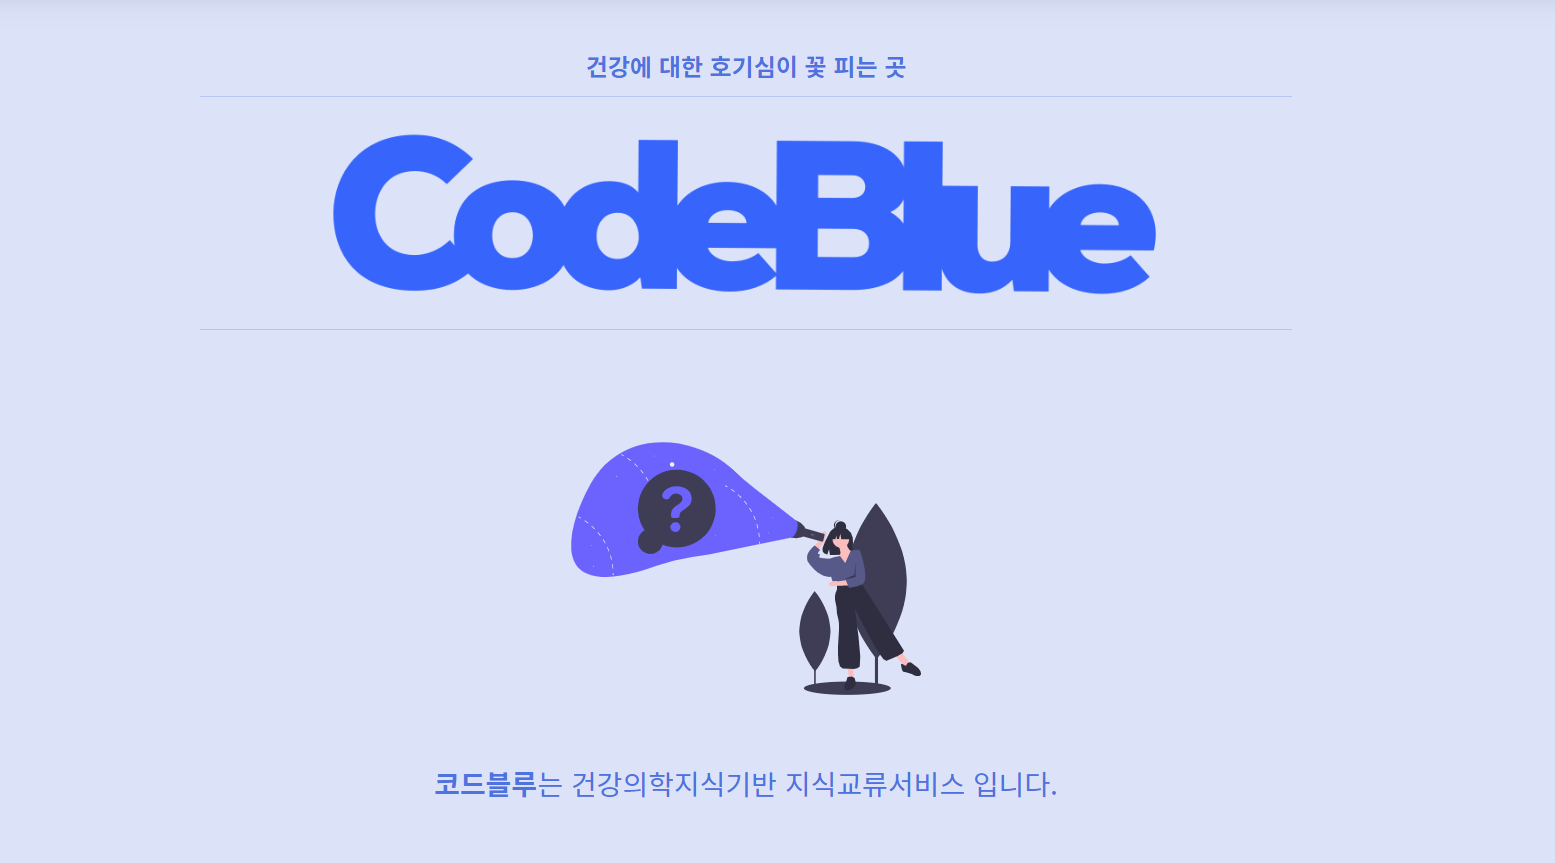 https://raw.githubusercontent.com/crazy-oung/CodeBlue/master/images/intro.PNG